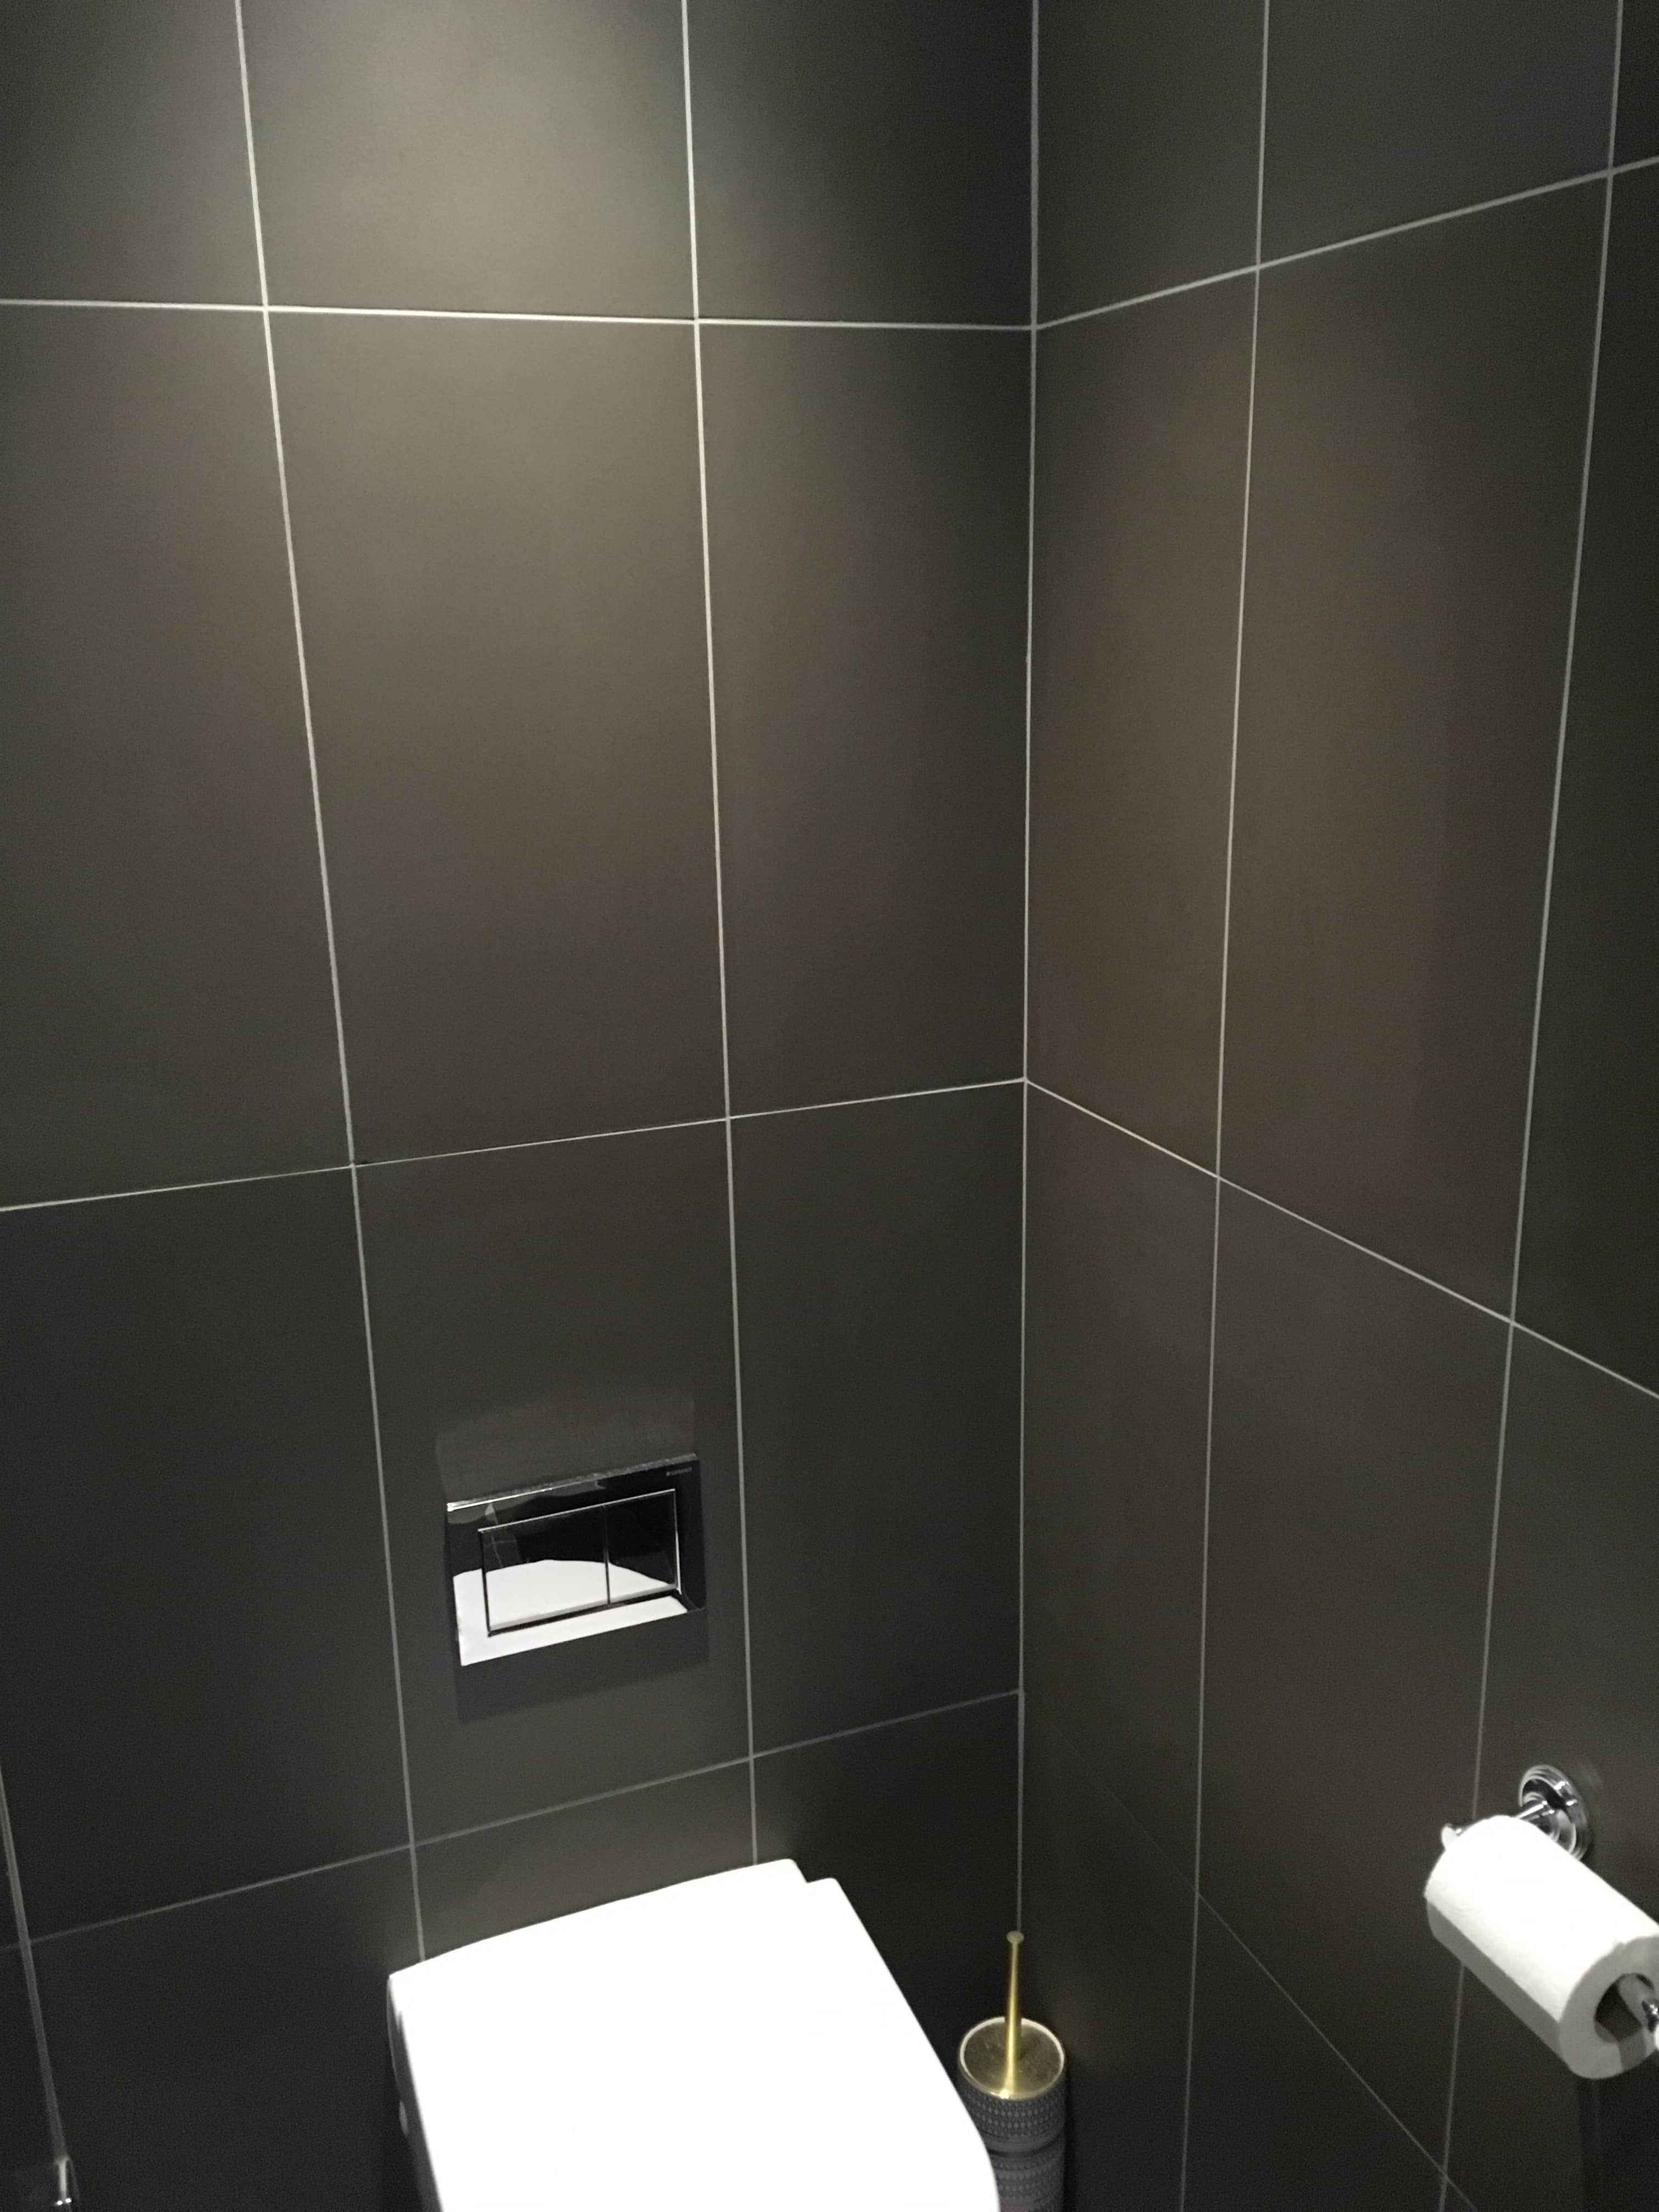 Marvelous Correcting Tilers Grout Colour Mistake In A Cobham Bathroom Interior Design Ideas Clesiryabchikinfo